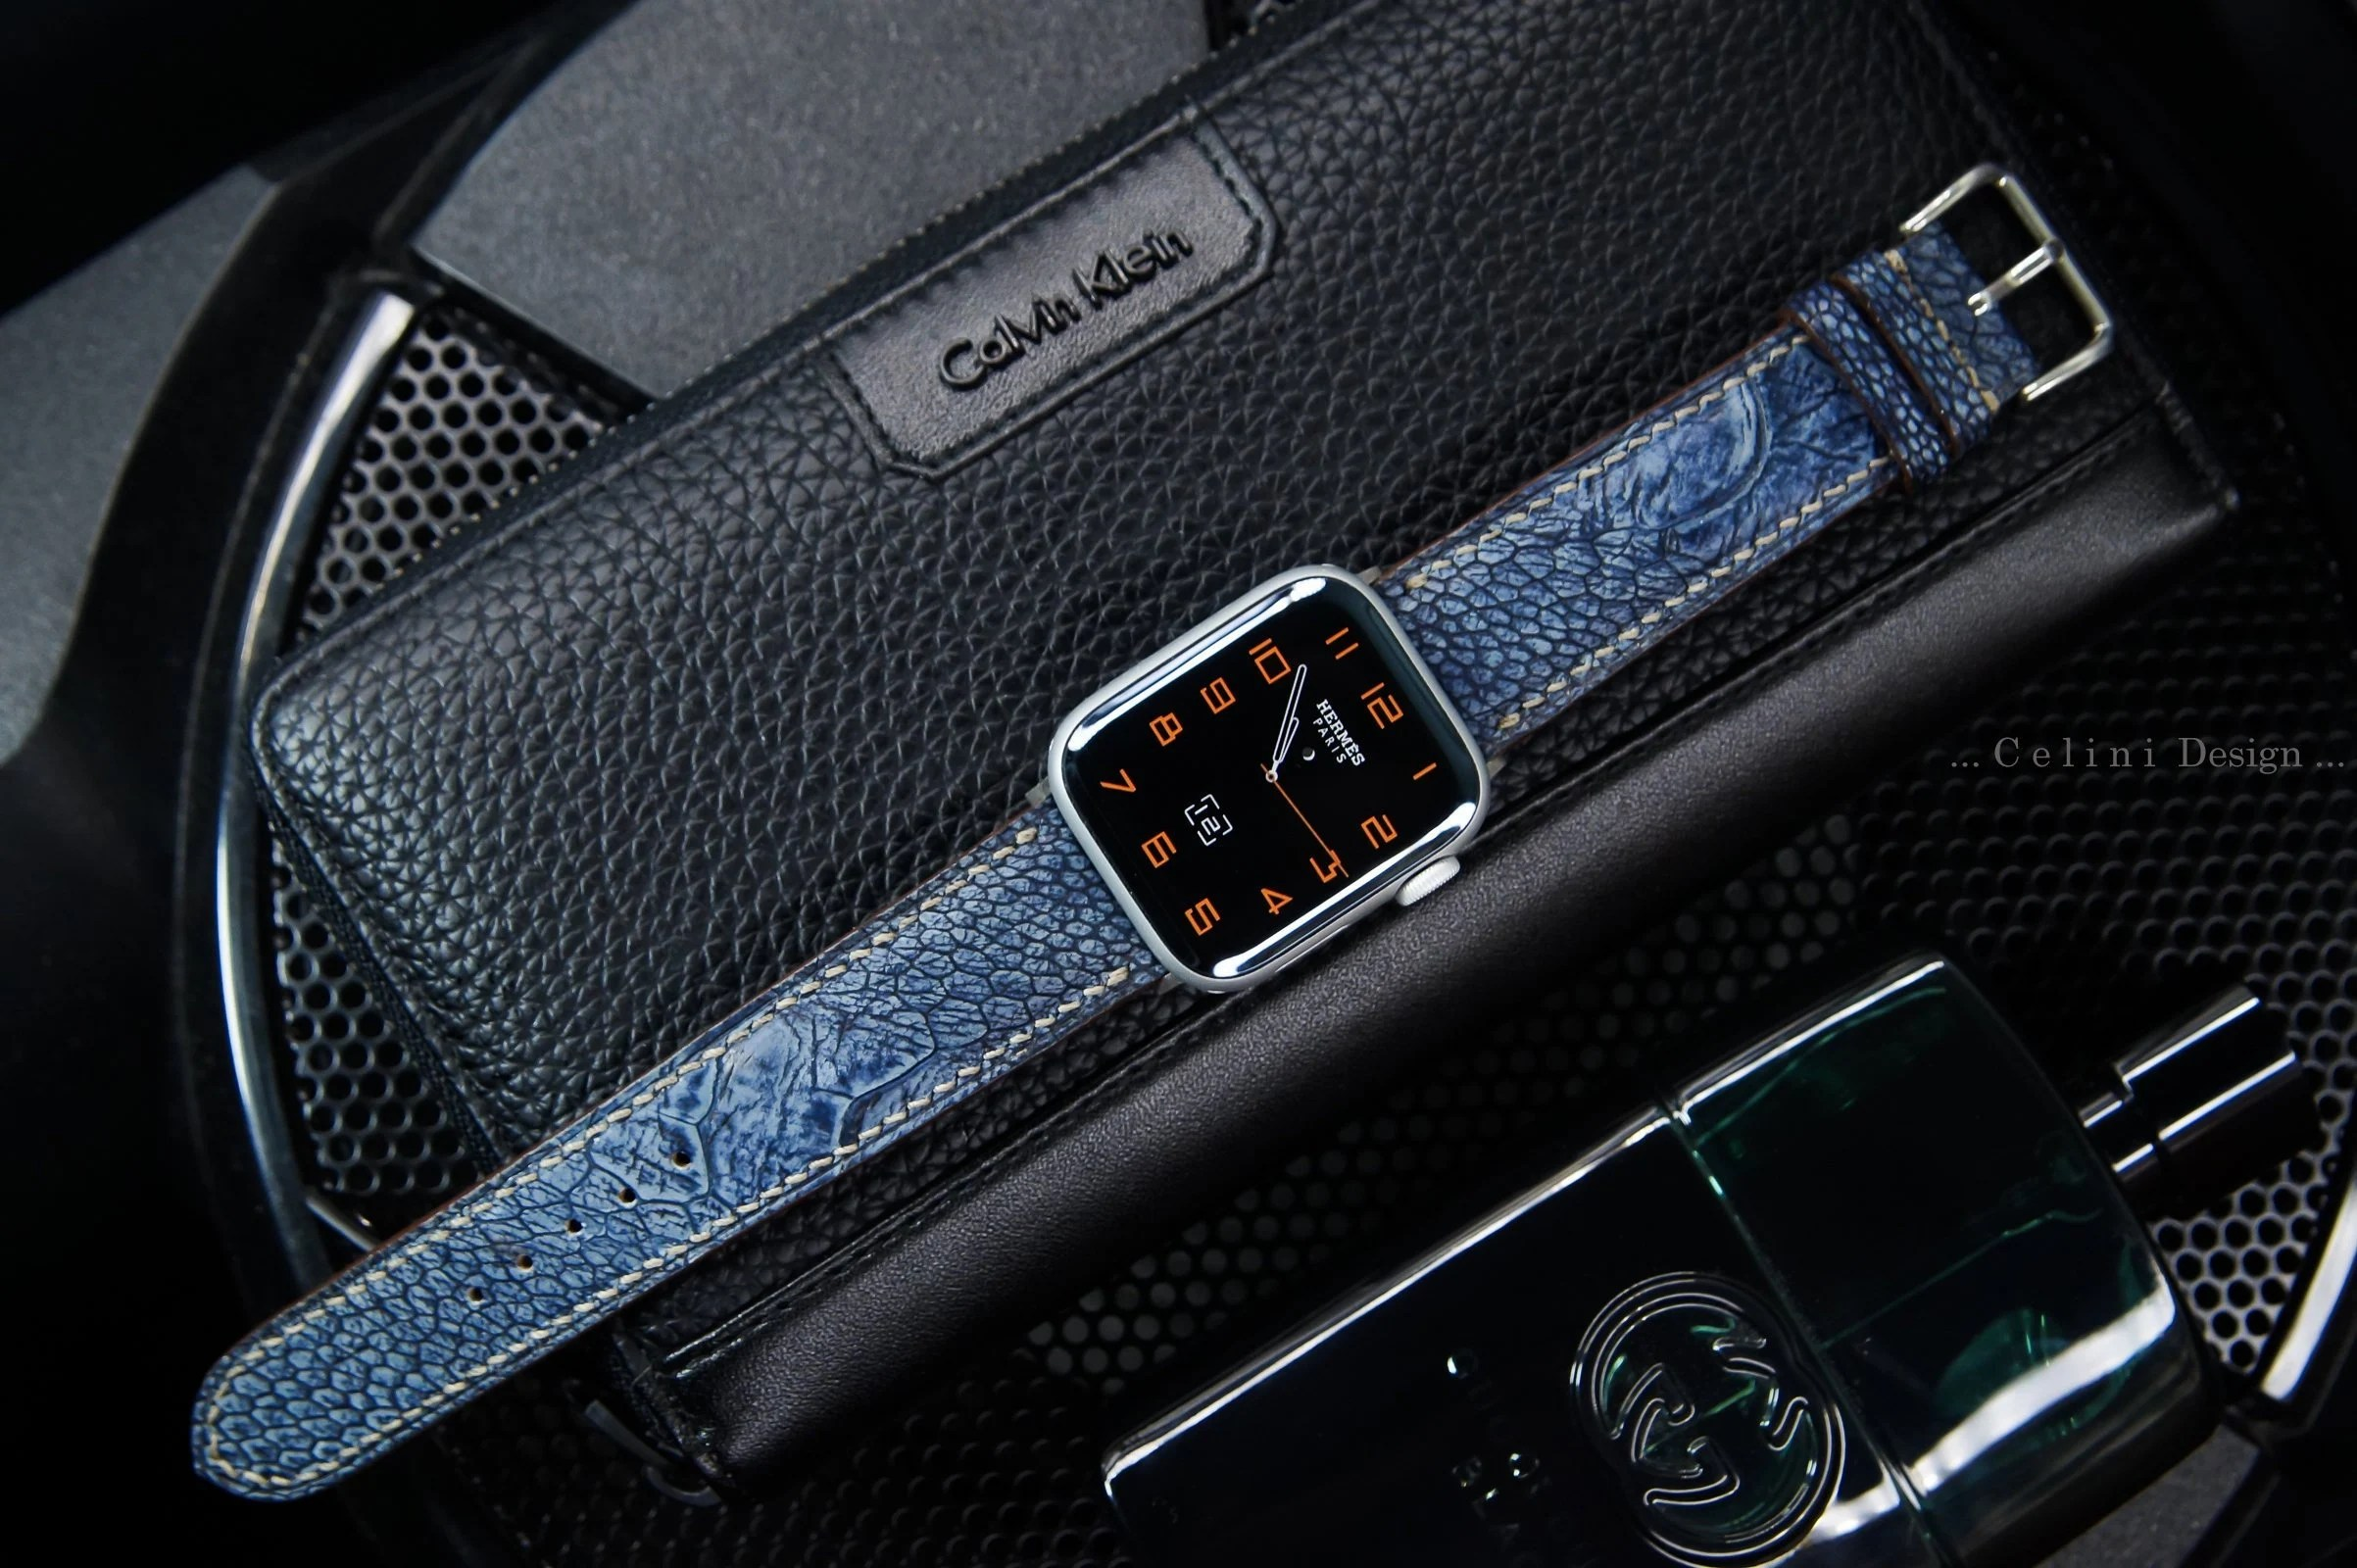 Carbon Kleur Stone Washed Ostrich Leather Apple Watch Band 44mm 40mm 42mm 38mm Apple Watches Series 4 3 2 1 Sport Edition Nike Apple Watch 4 Band